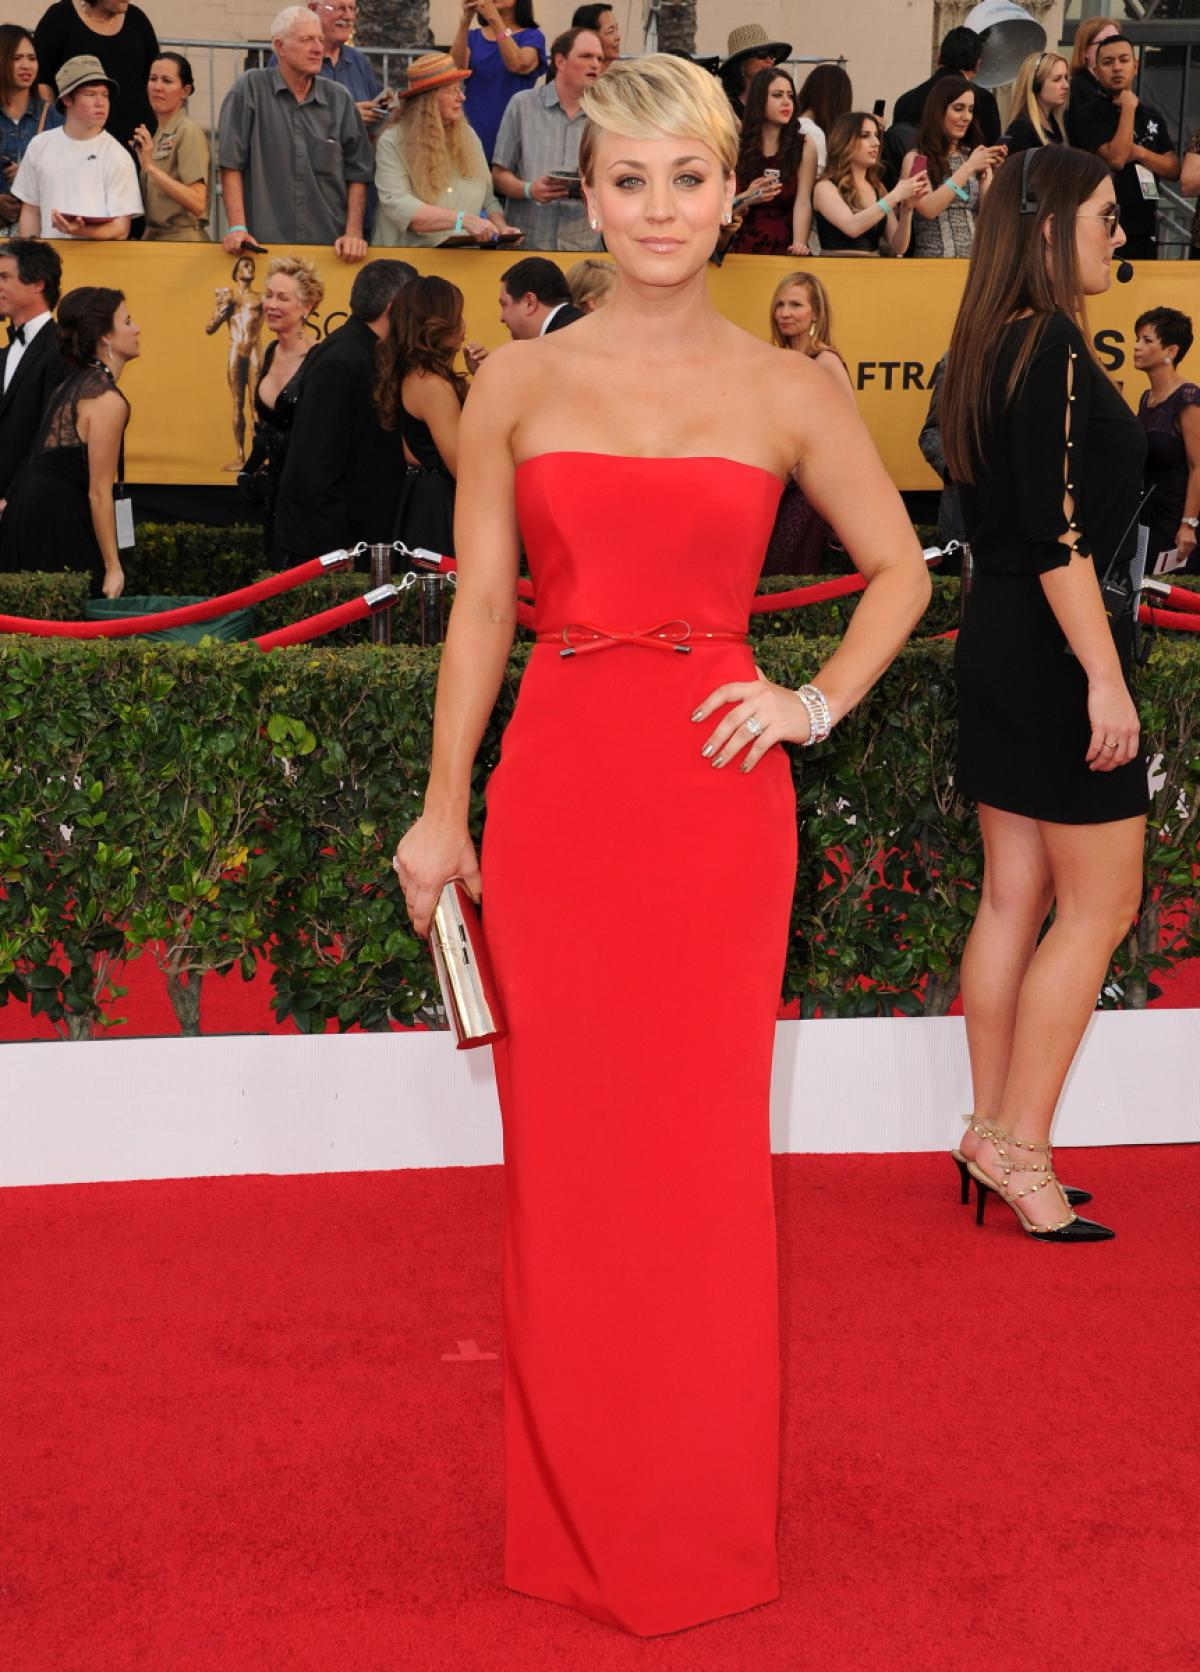 """""""Kaley Cuoco was a lady in red."""" - The Daily News    """"She looks like a modern day Grace Kelly."""" - Hollywood Life    """"One of our top five looks."""" - People Style Watch    """"Kaley Cuoco sizzles in red."""" - The Daily Mail"""